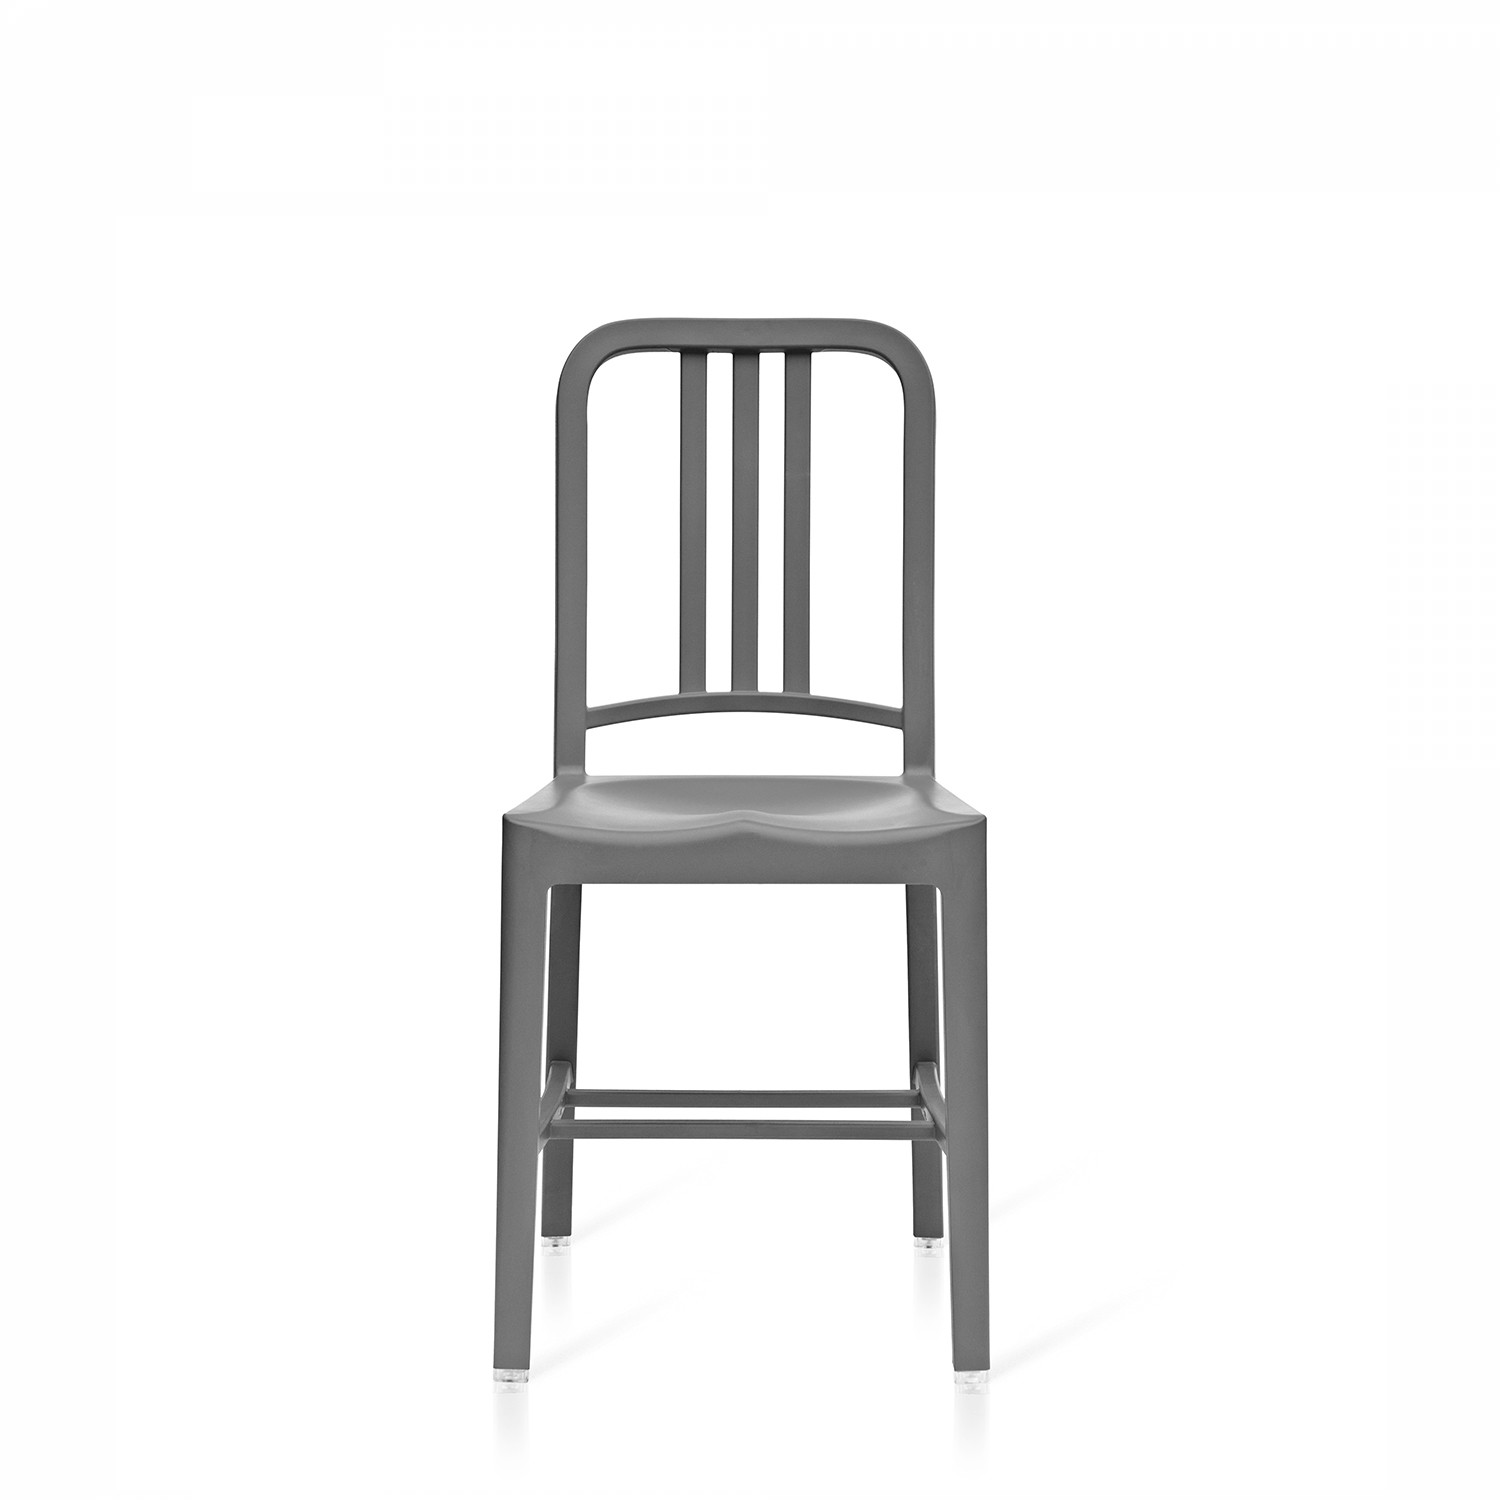 111 Navy Dining Chair - Set of 2 Flint Grey